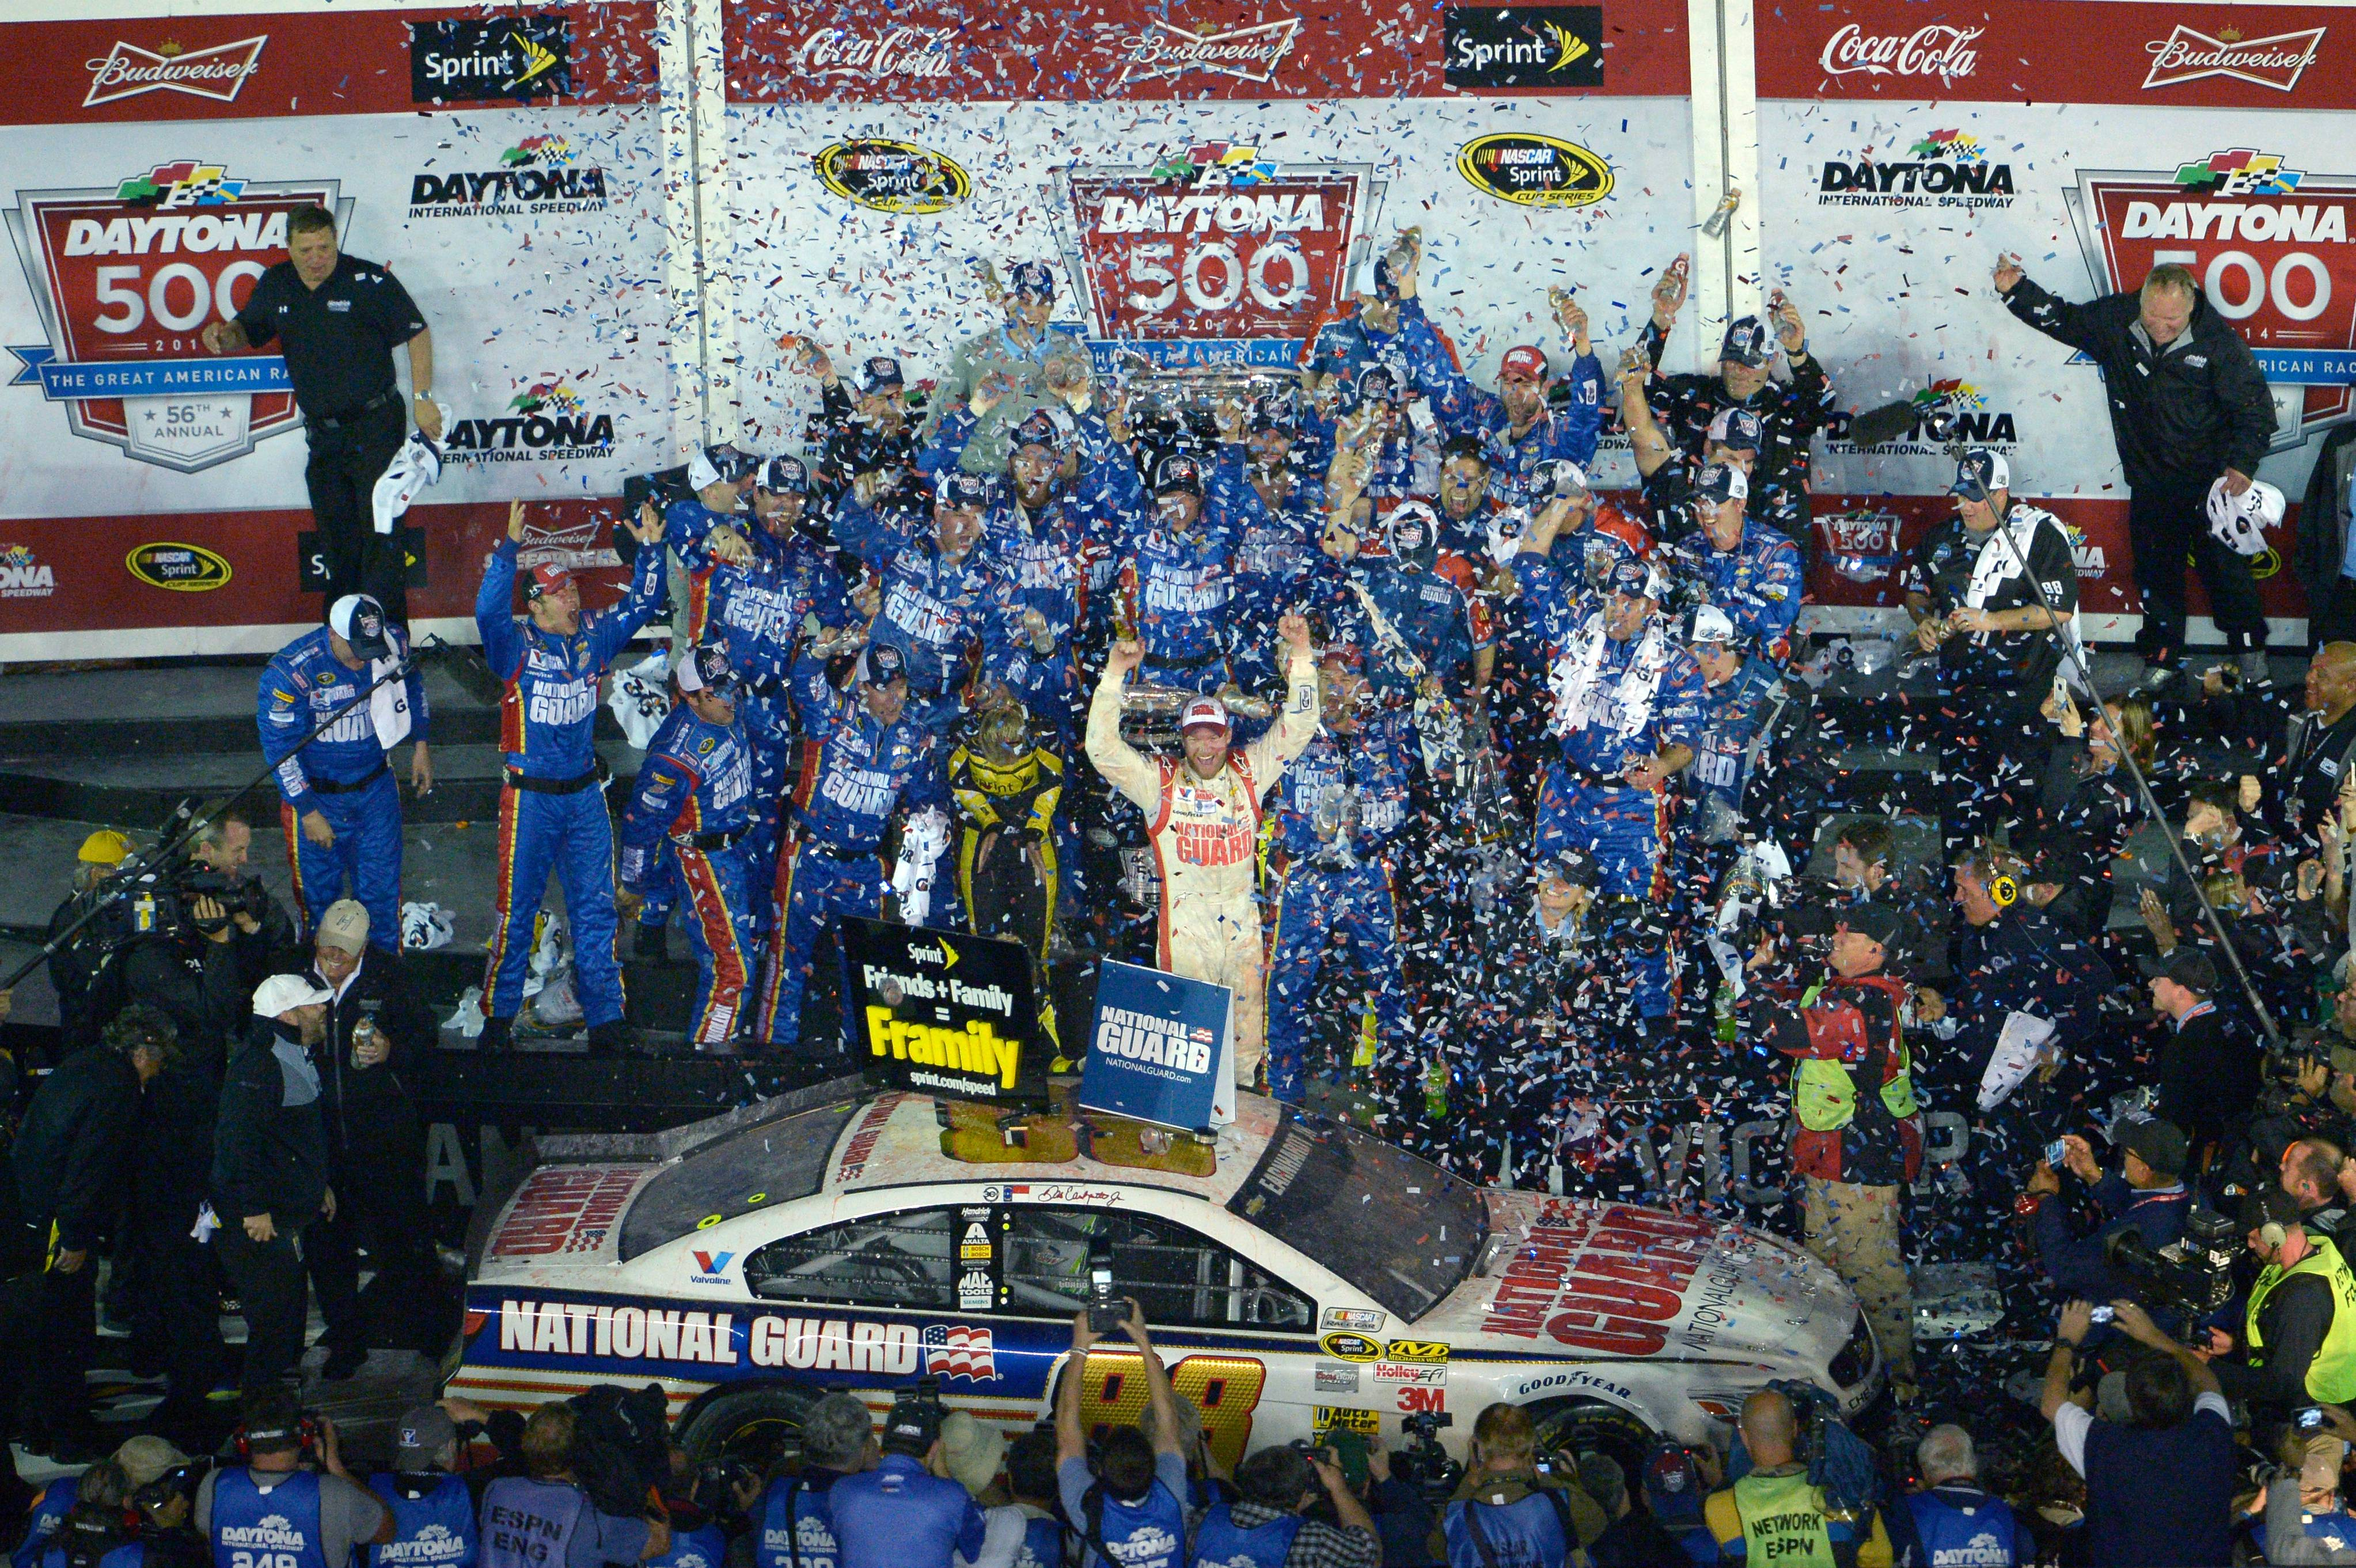 Dale Earnhardt Jr., center, celebrates with his team in Victory Lane after winning the NASCAR Daytona 500 auto race at Daytona International Speedway in Daytona Beach, Fla., Sunday, Feb. 23, 2014.